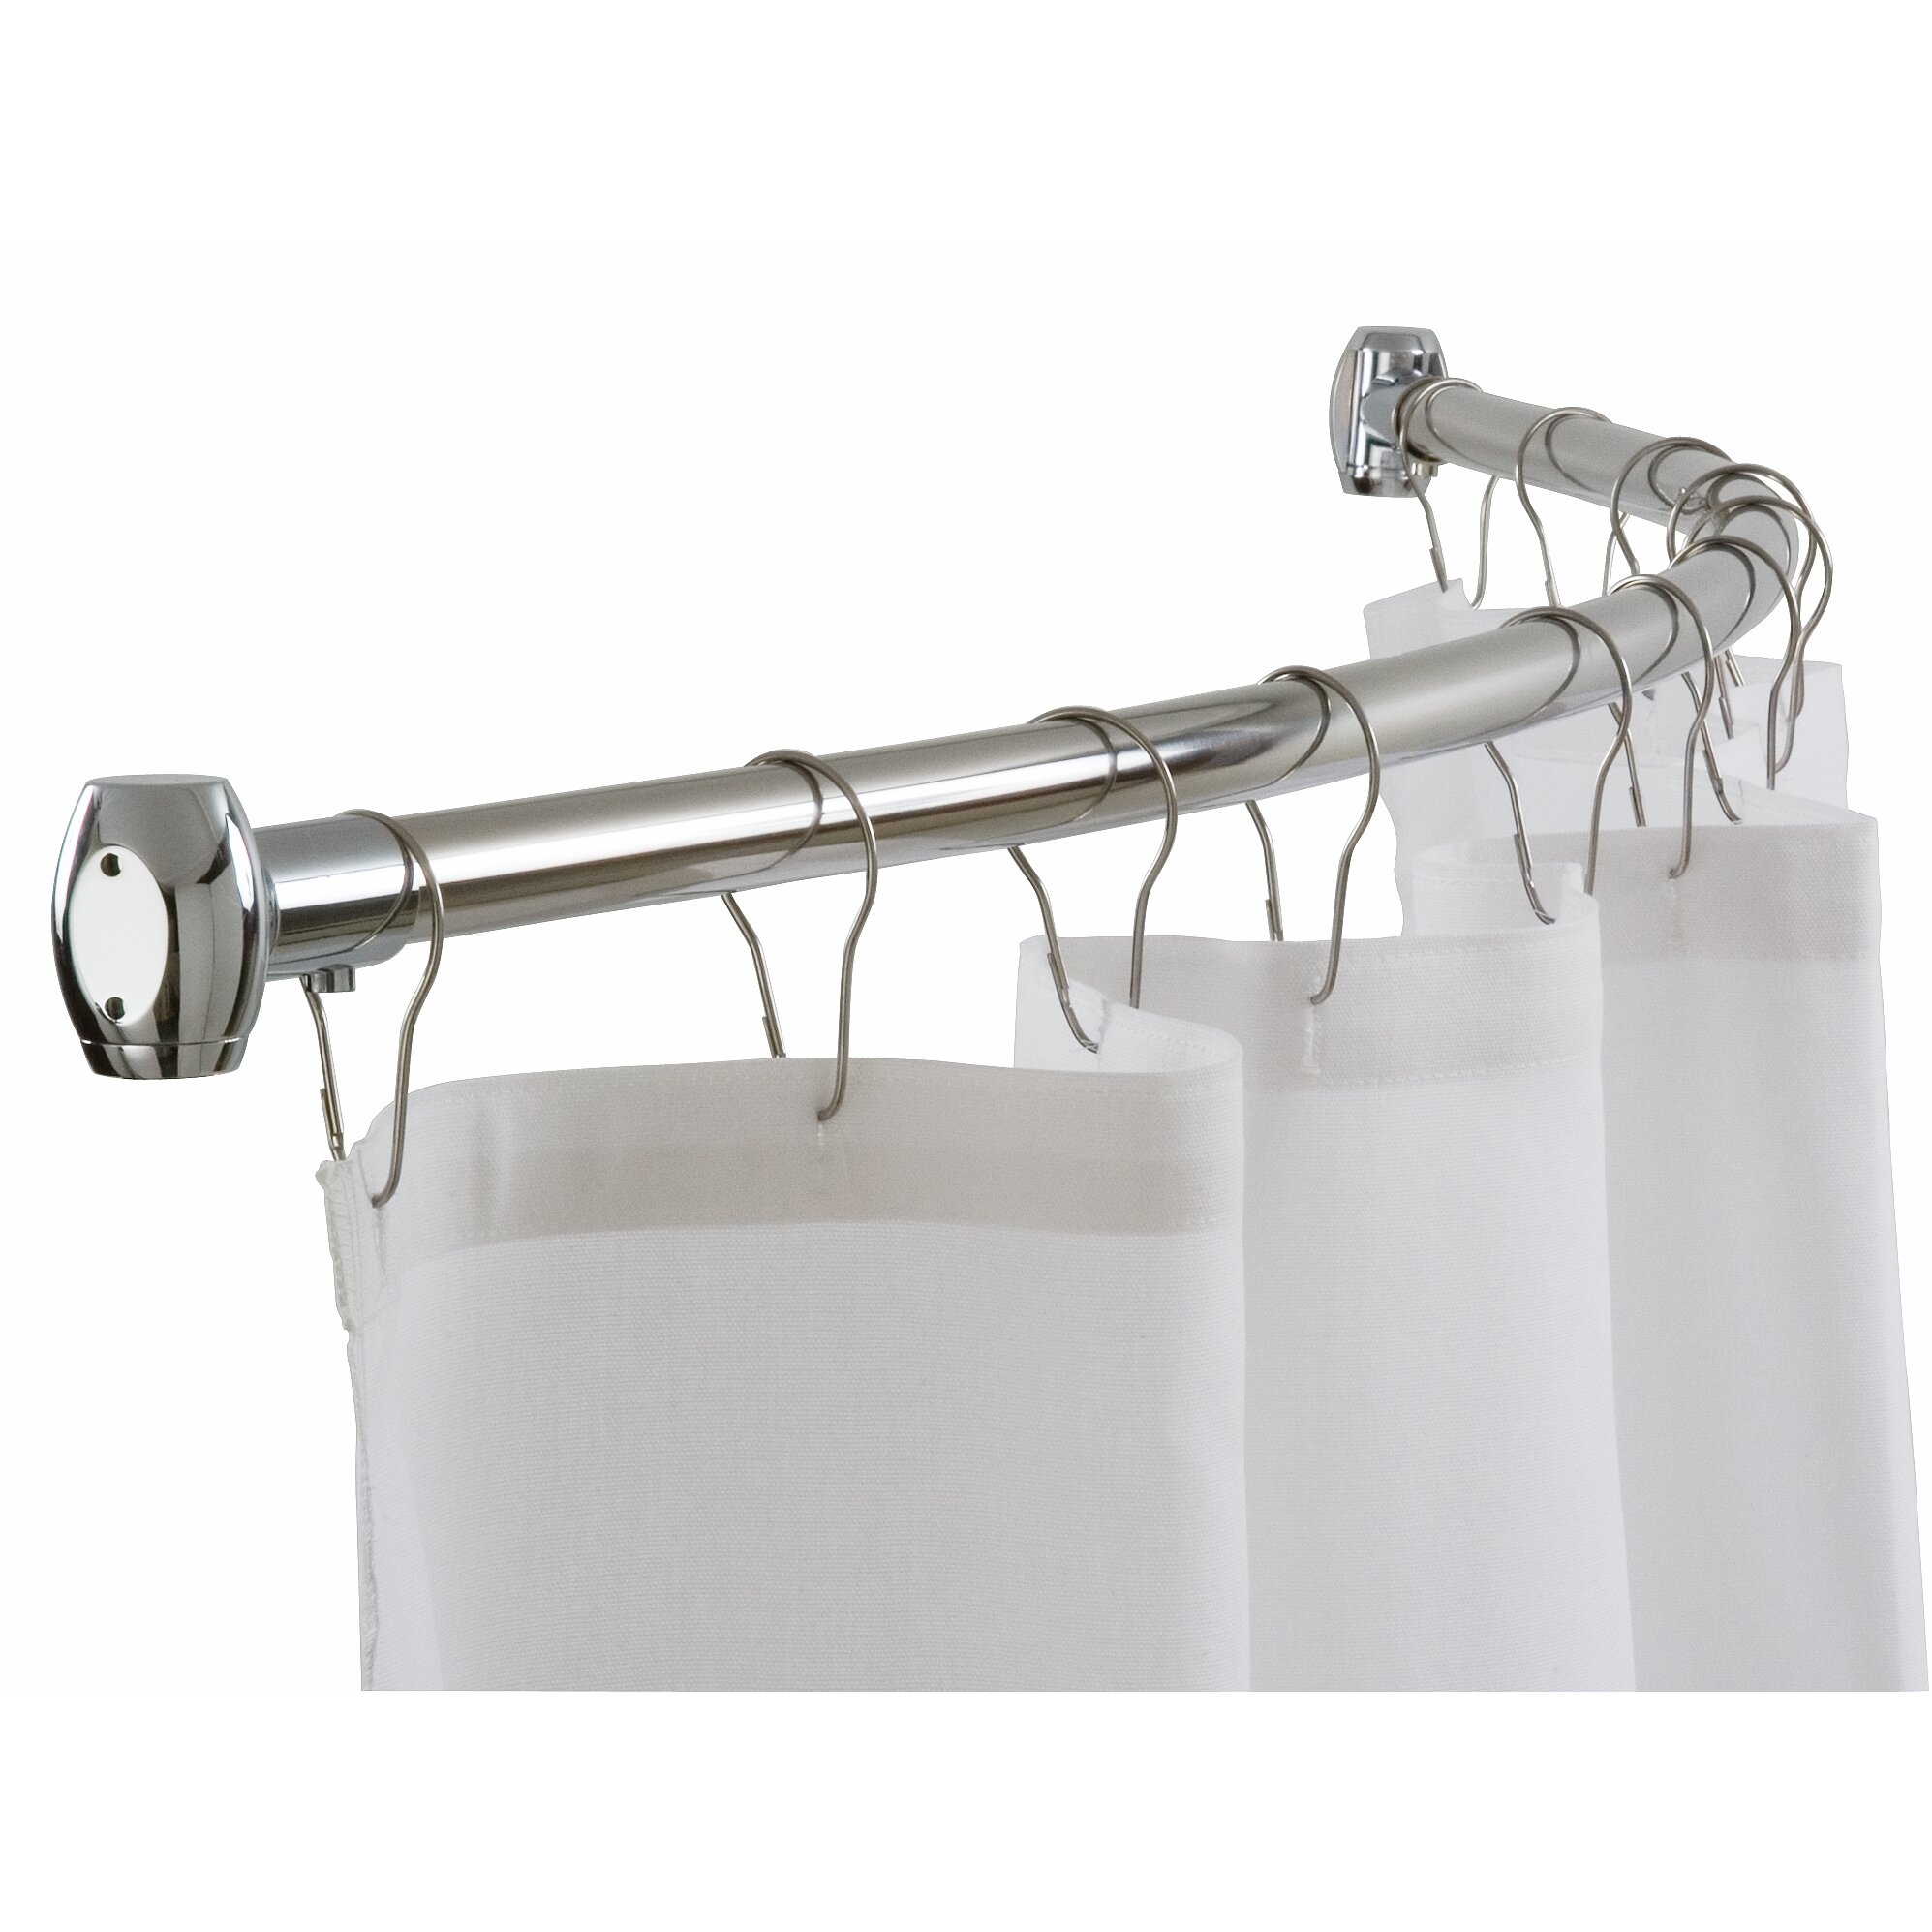 Curved curtain rod - 60 Curved Shower Curtain Rod